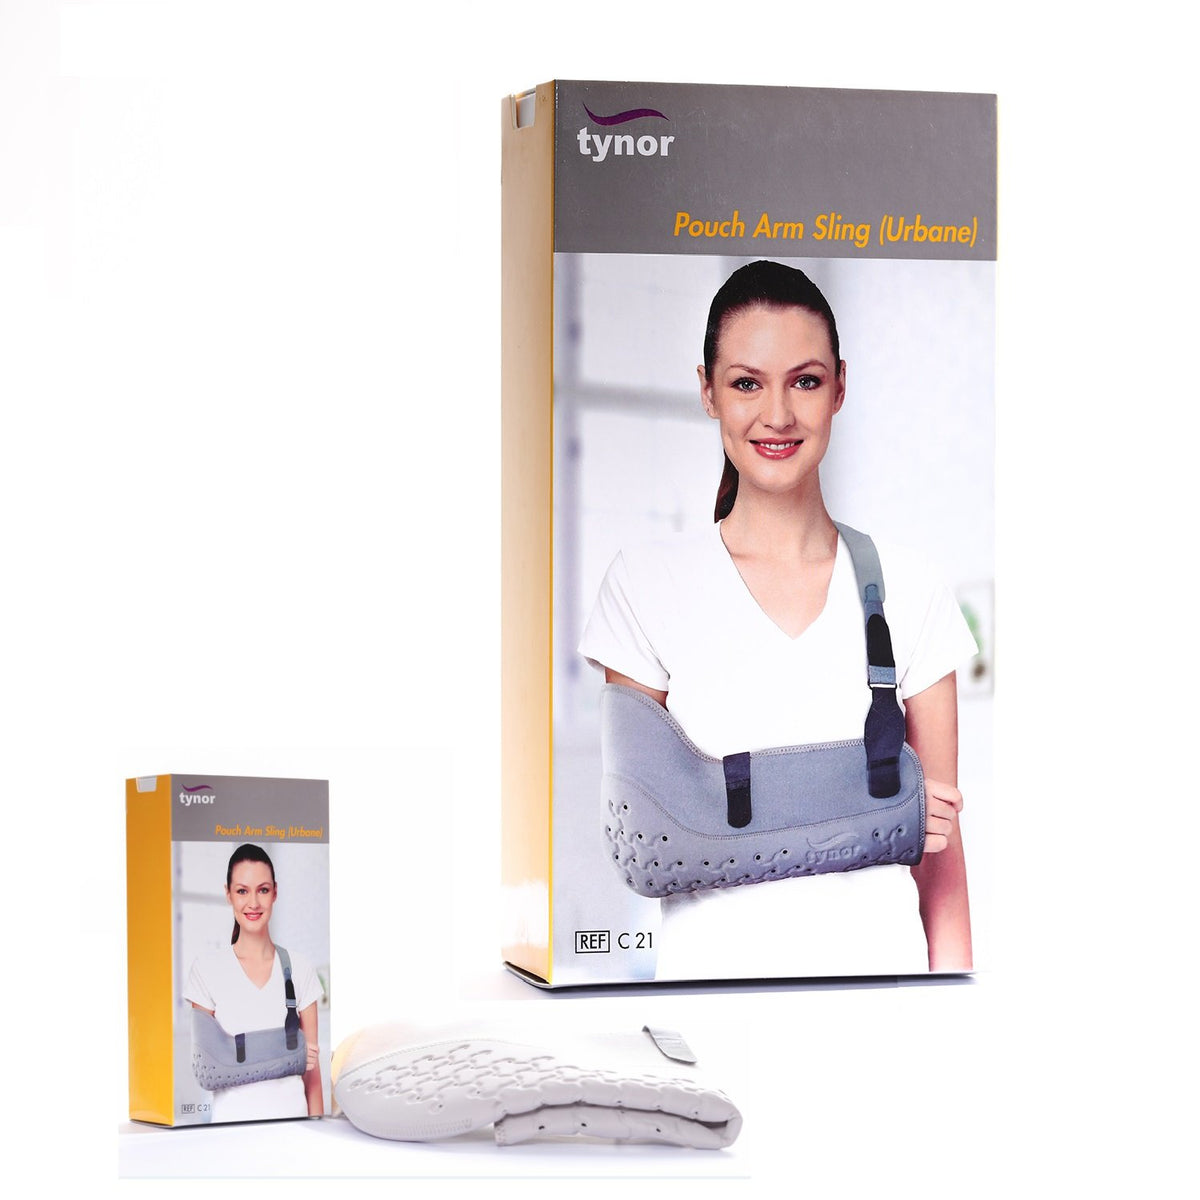 Tynor Australia Pouch Arm Sling (Urbane) Fracture Aids Physio Supplies Orthopedic aids Physio Supports Australia